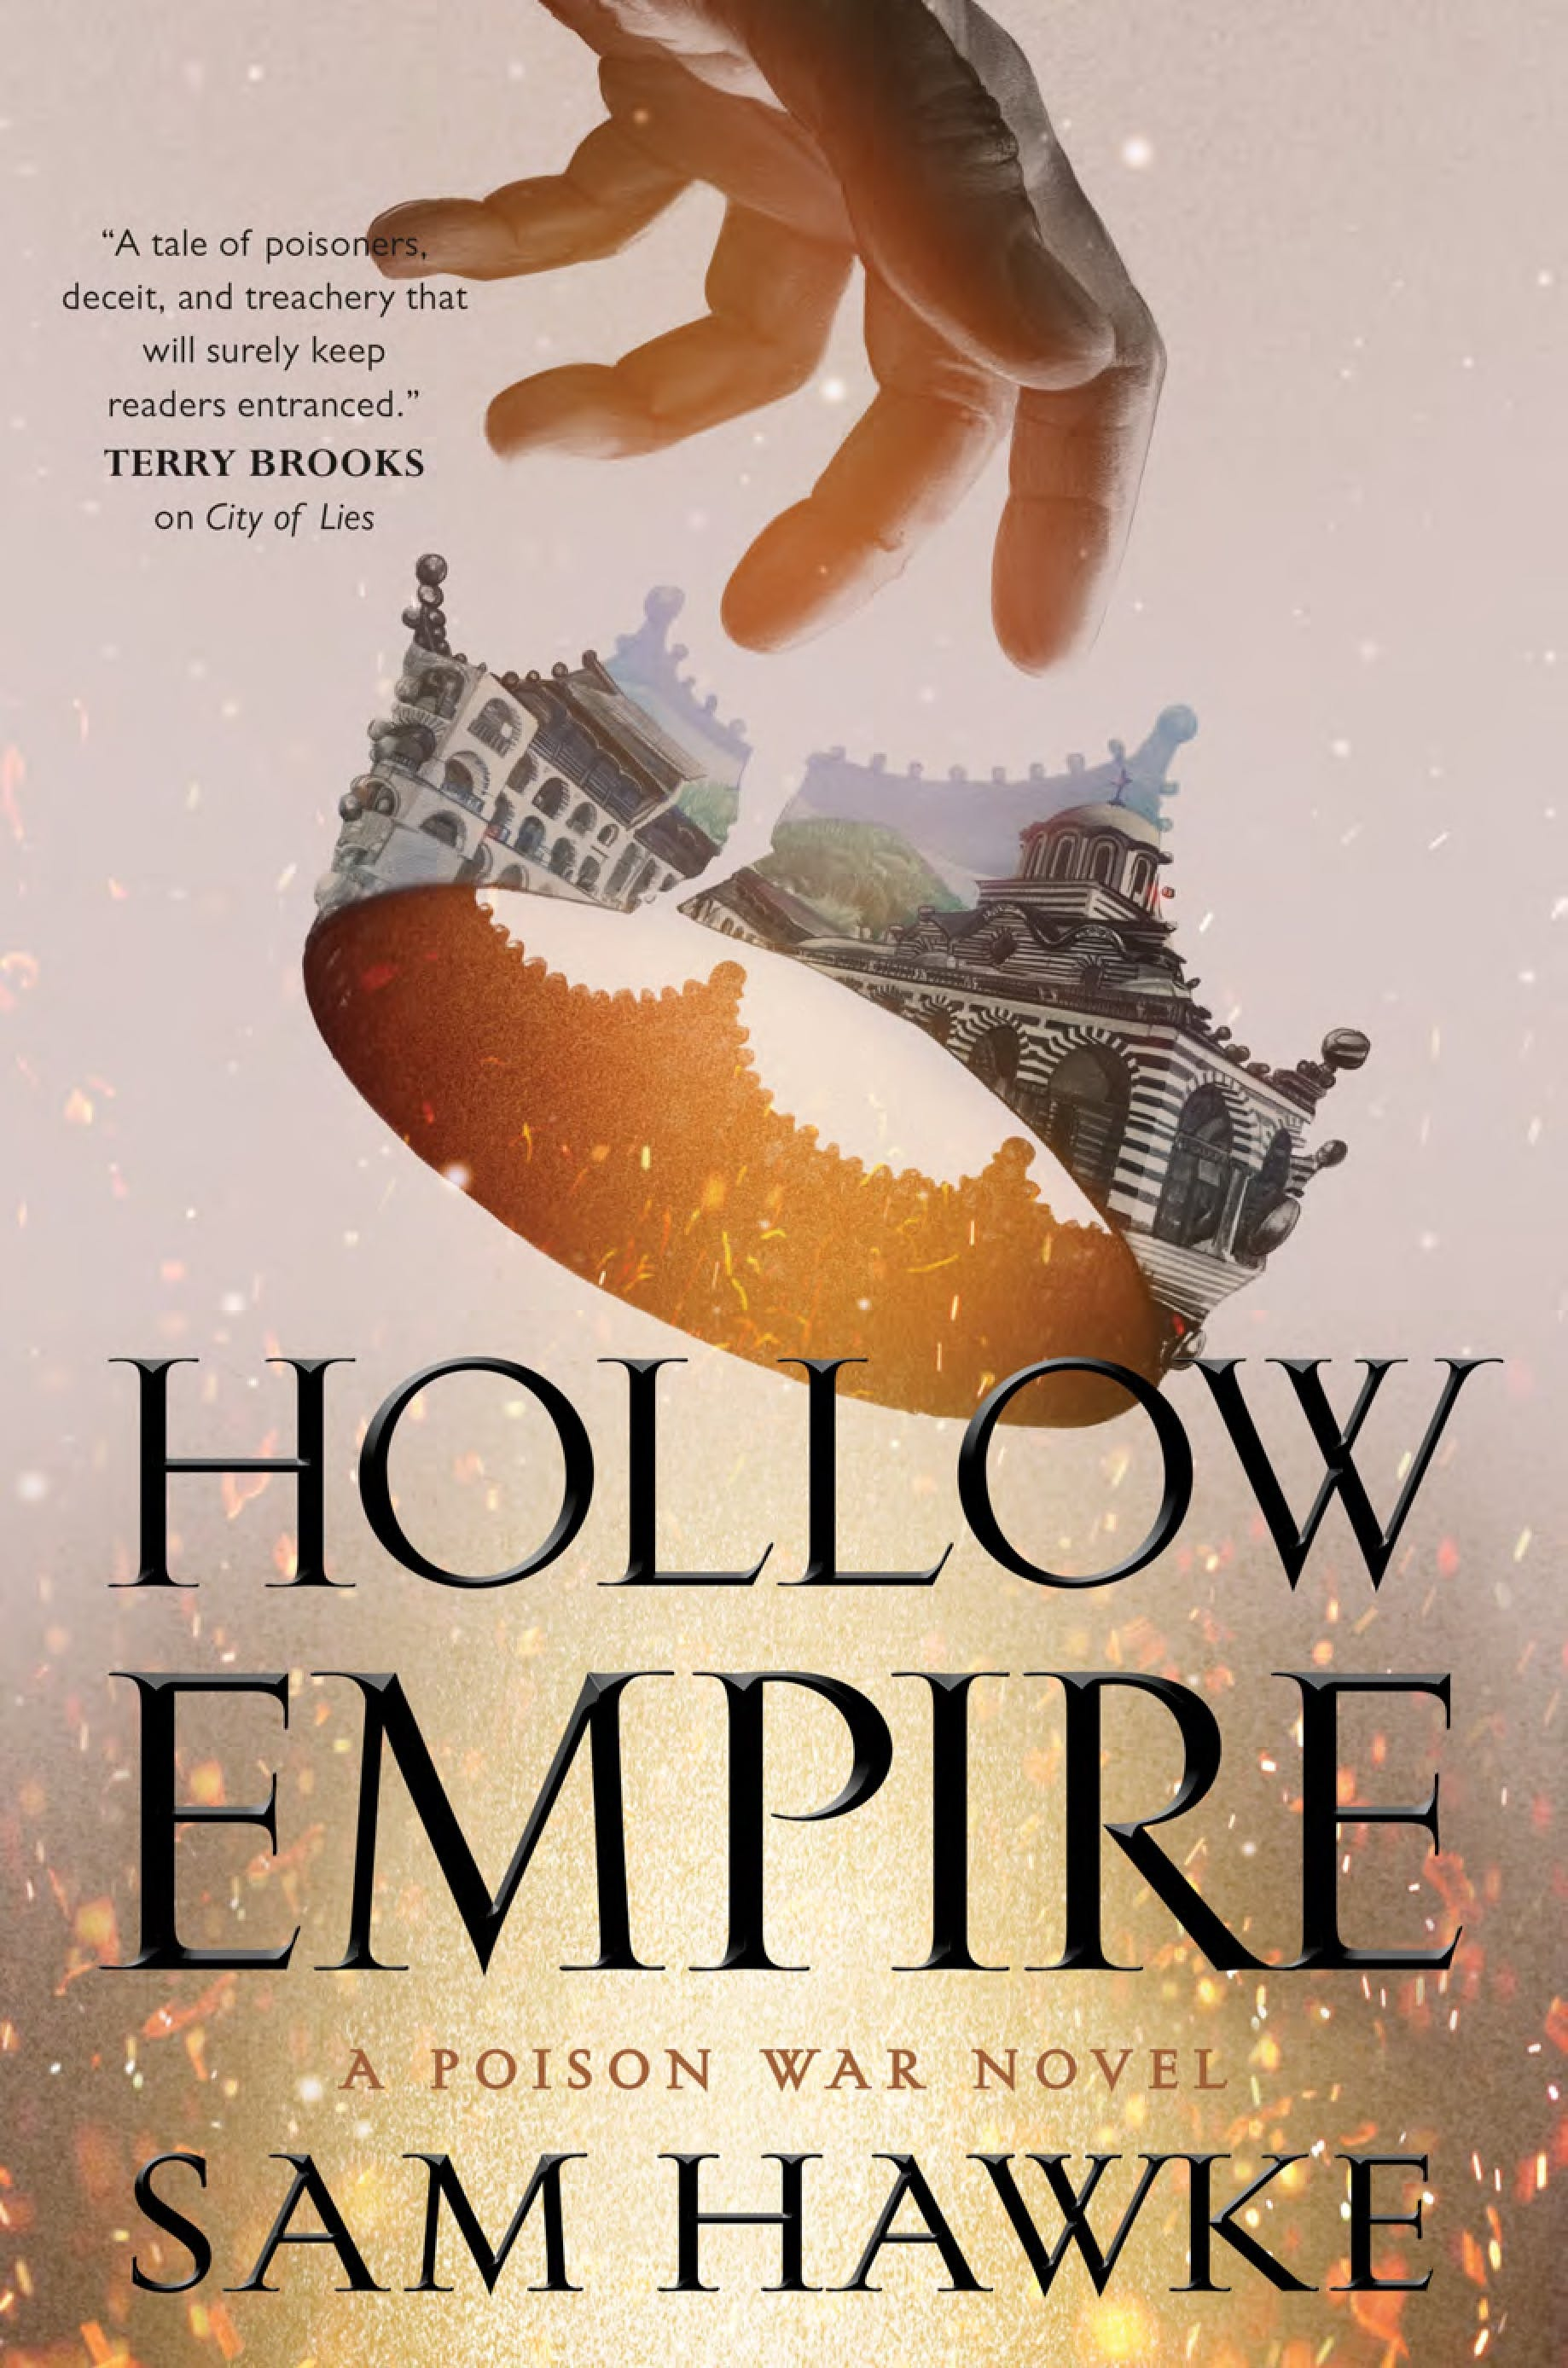 Image of Hollow Empire